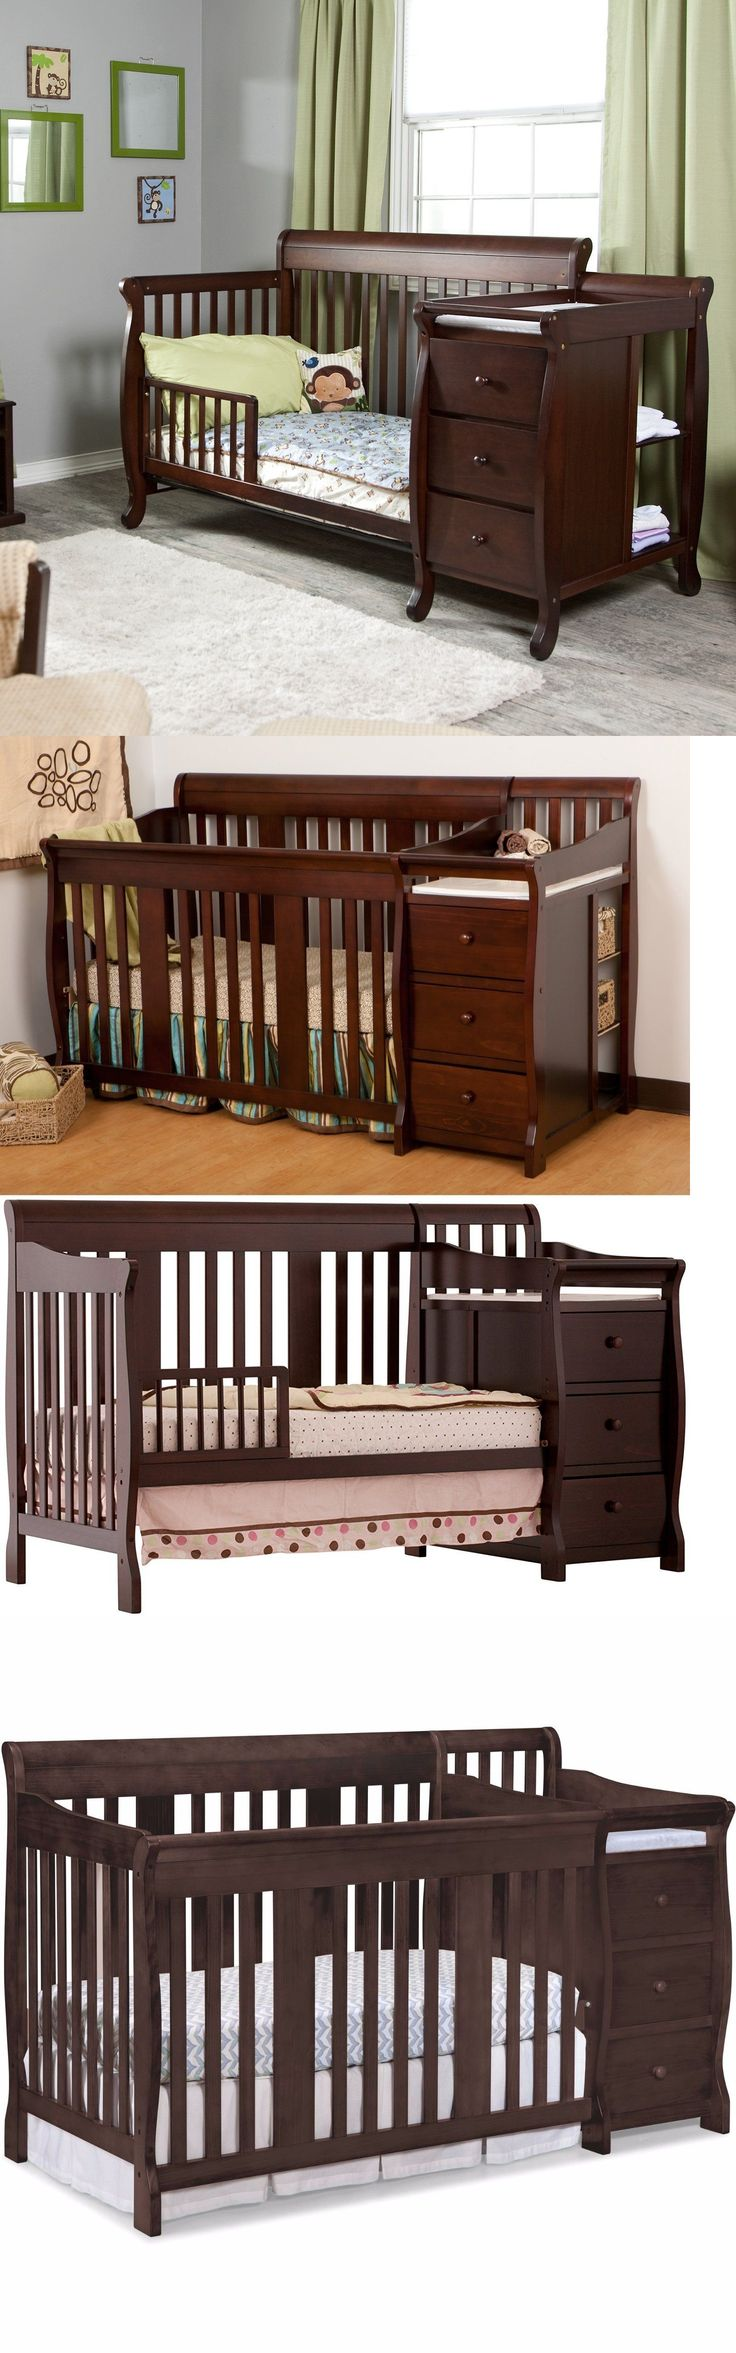 Baby Nursery: 4 In 1 Side Convertible Crib Changer Nursery Furniture Baby Toddler Bed Espresso -> BUY IT NOW ONLY: $377.97 on eBay!